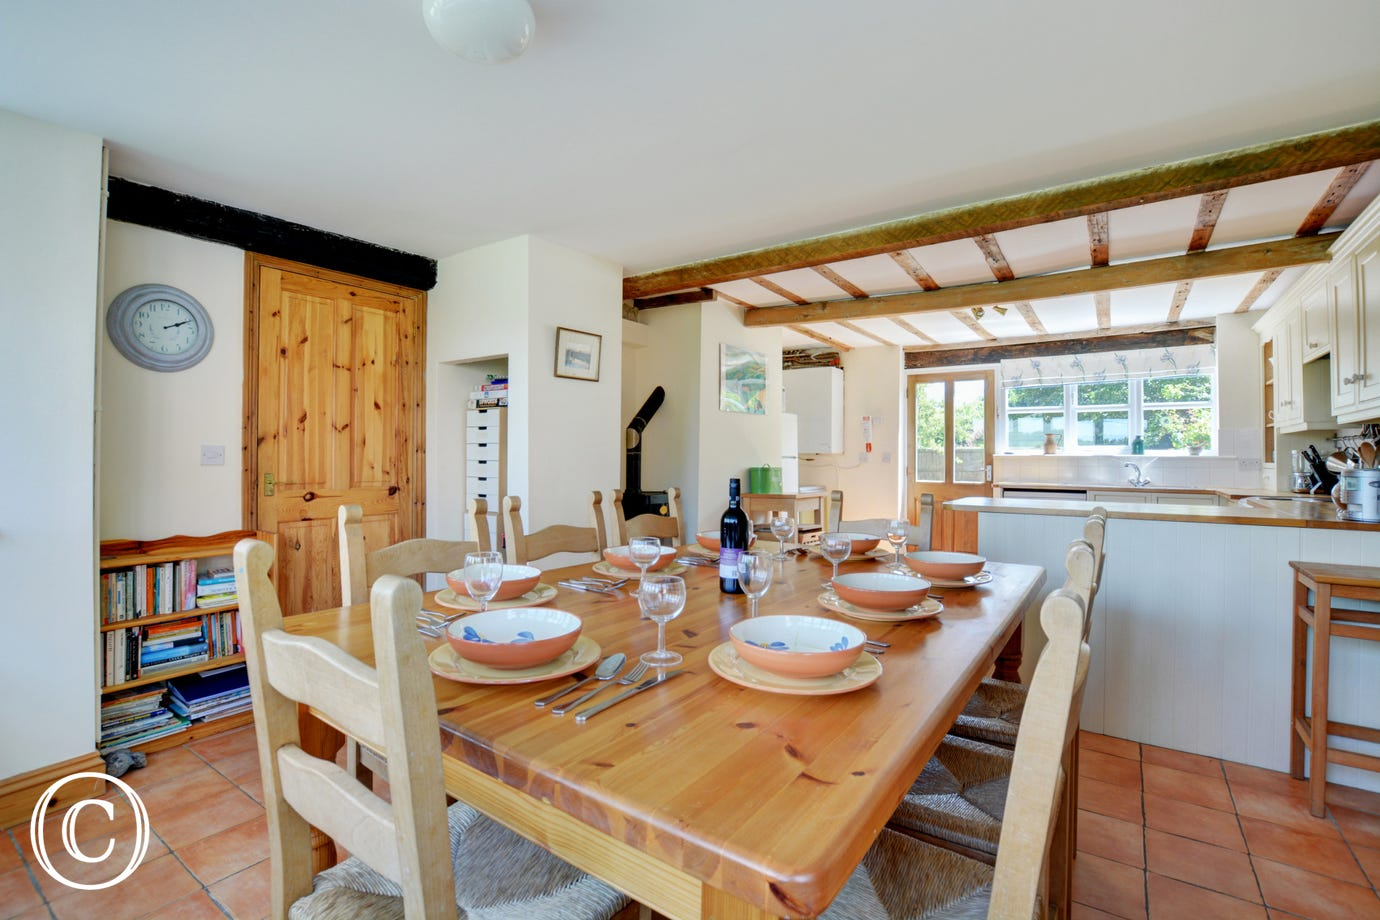 A lovely light and airy dining area with a table and chairs to seat 8, ideal for family meals